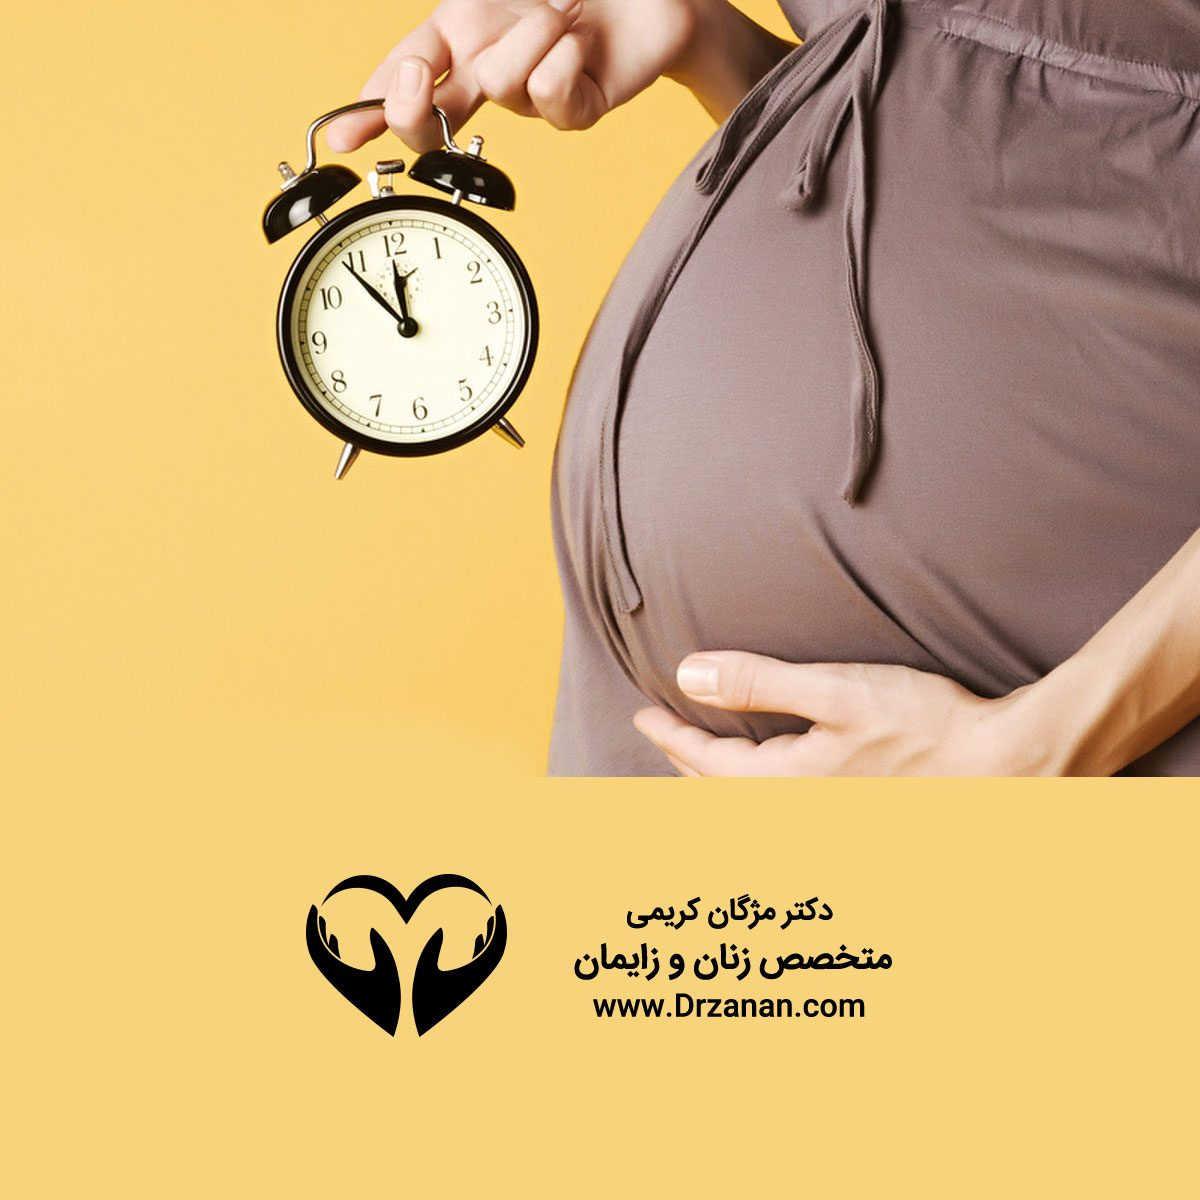 five-reasons-for-cesarean-delivery-2-1200x1200.jpg